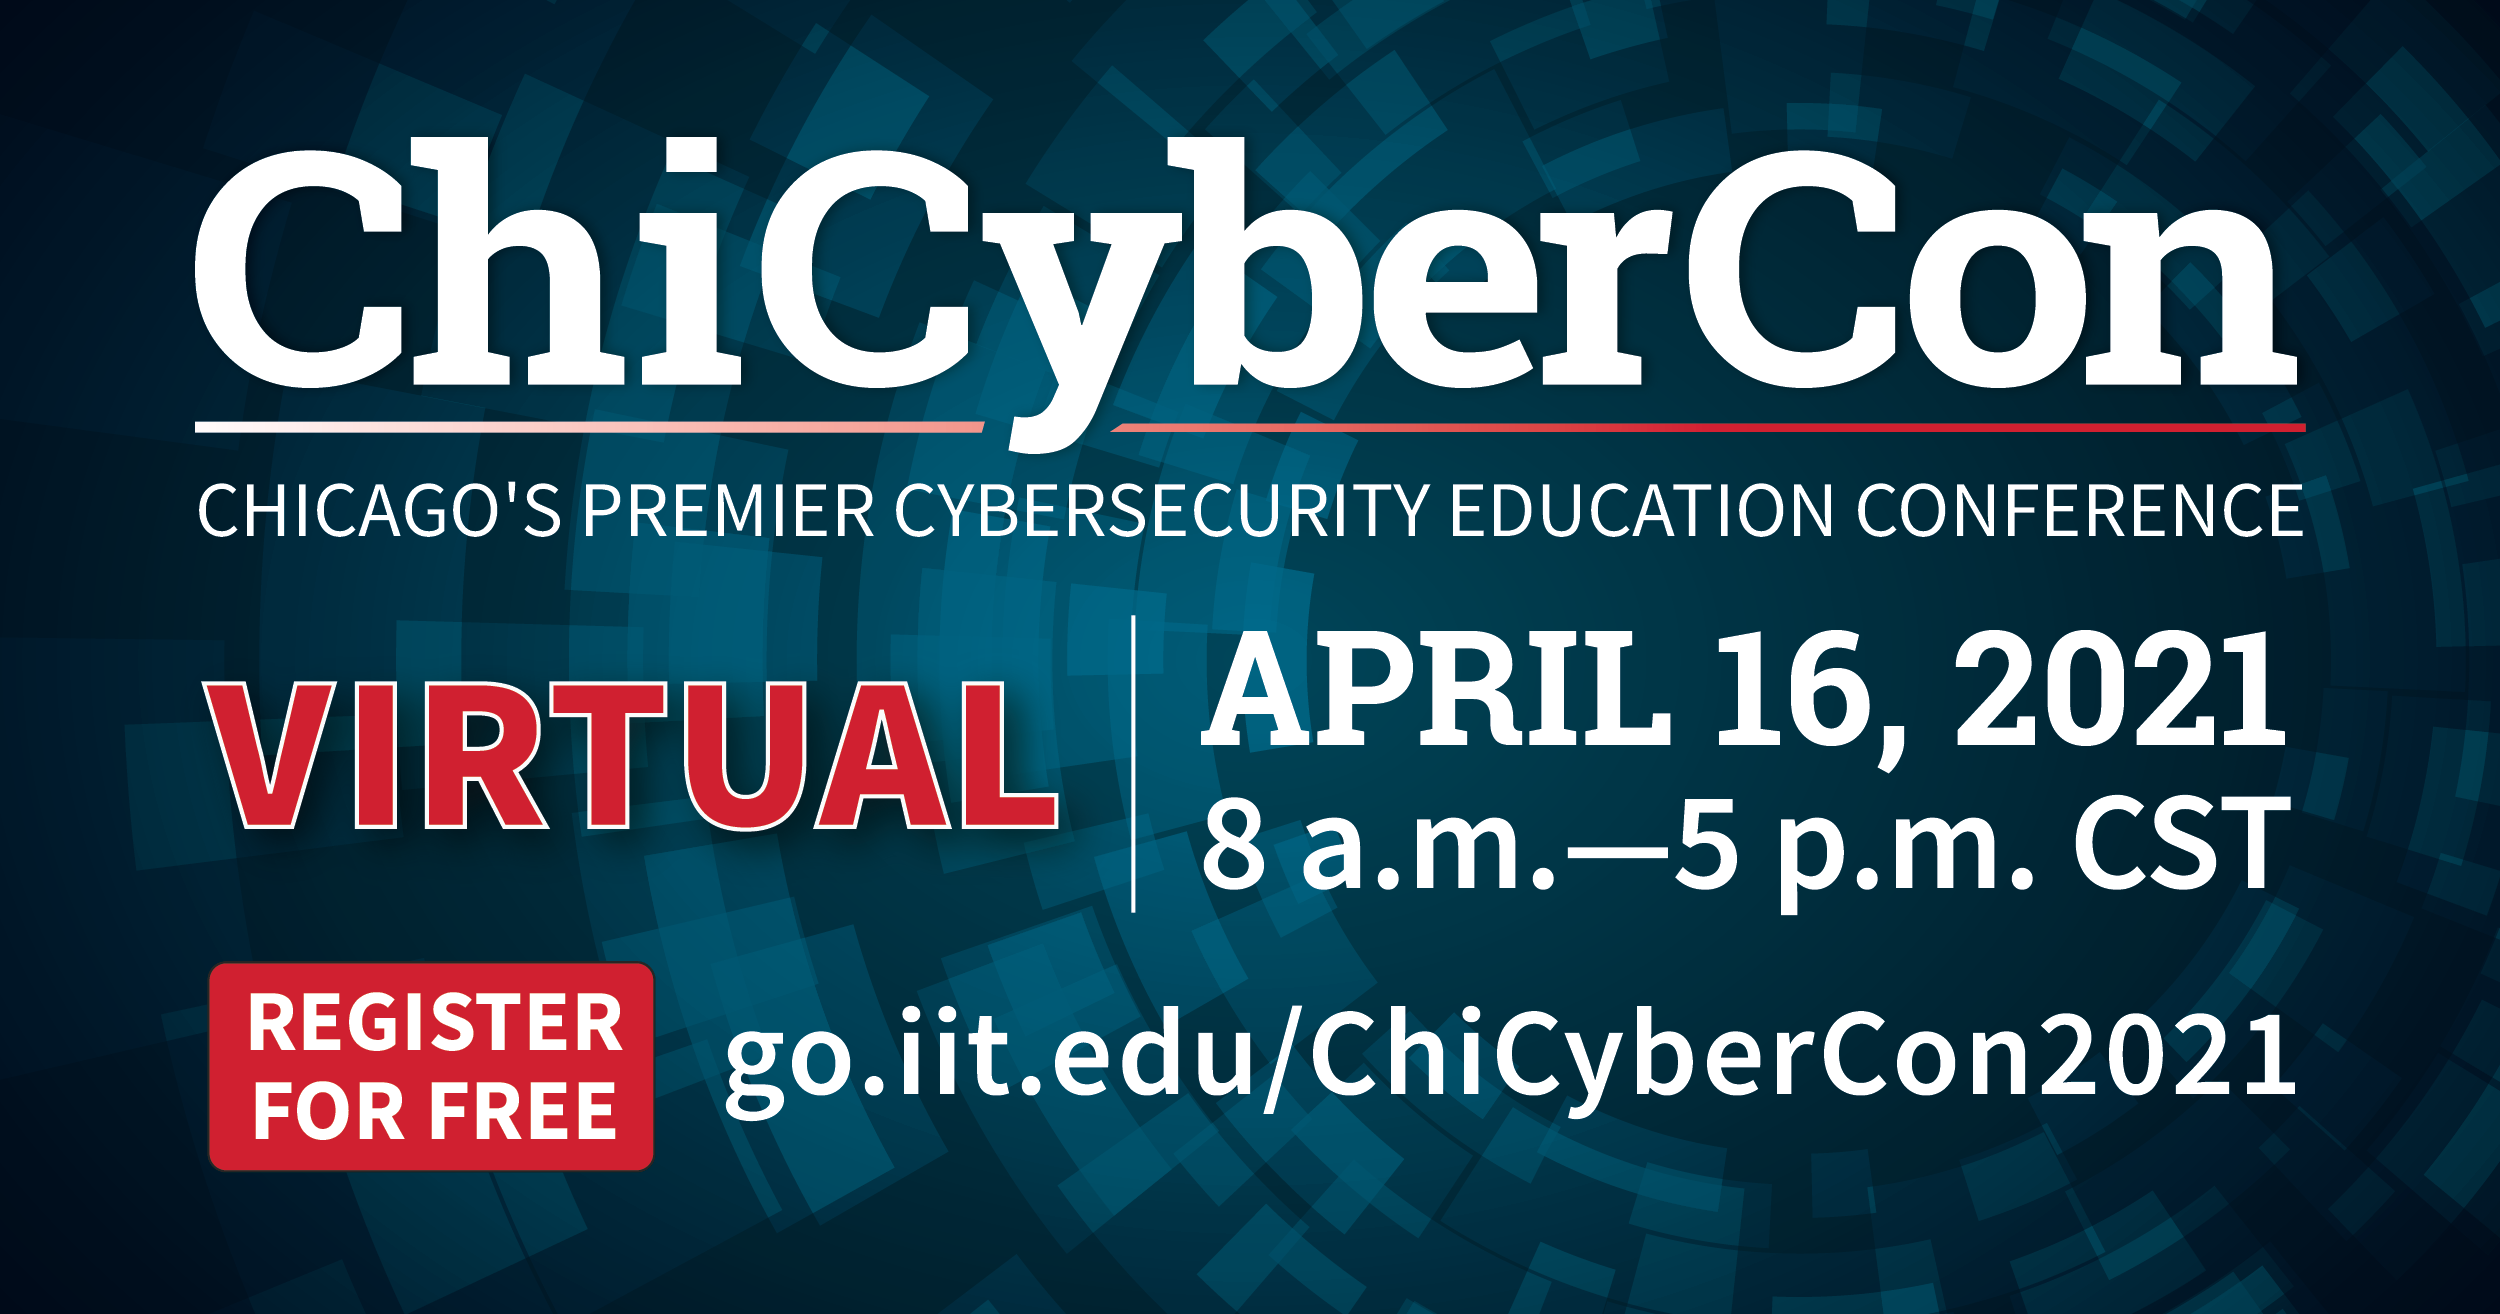 Register for ChiCyberCon 2021